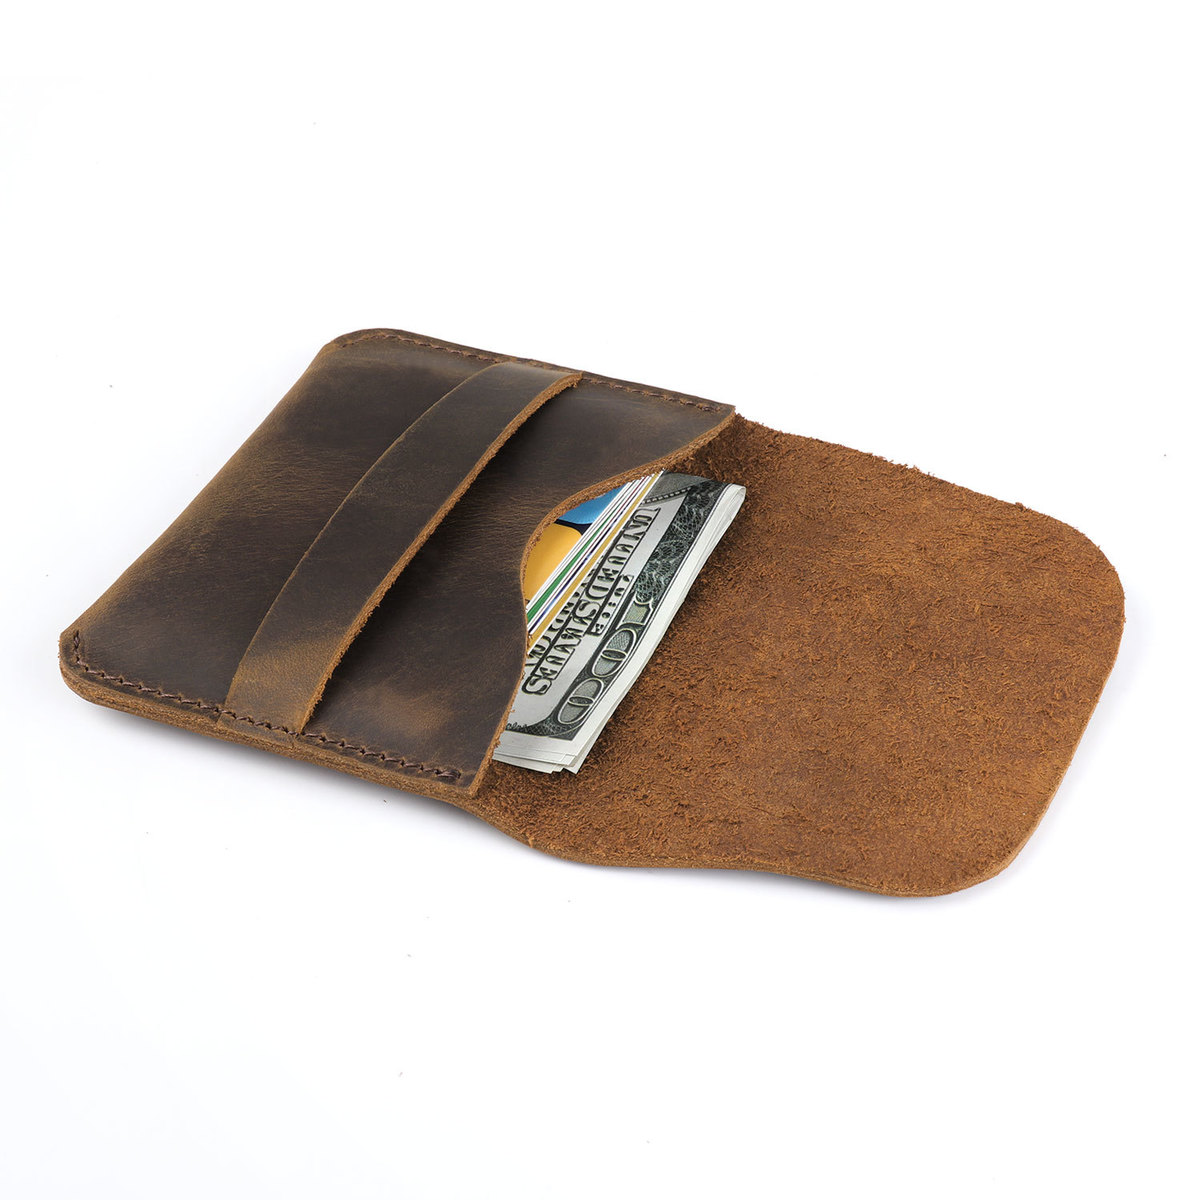 Moterm 100 genuine leather credit id card holder vintage moterm 100 genuine leather credit id card holder vintage business card holder retro male coin purses wallets free shipping colourmoves